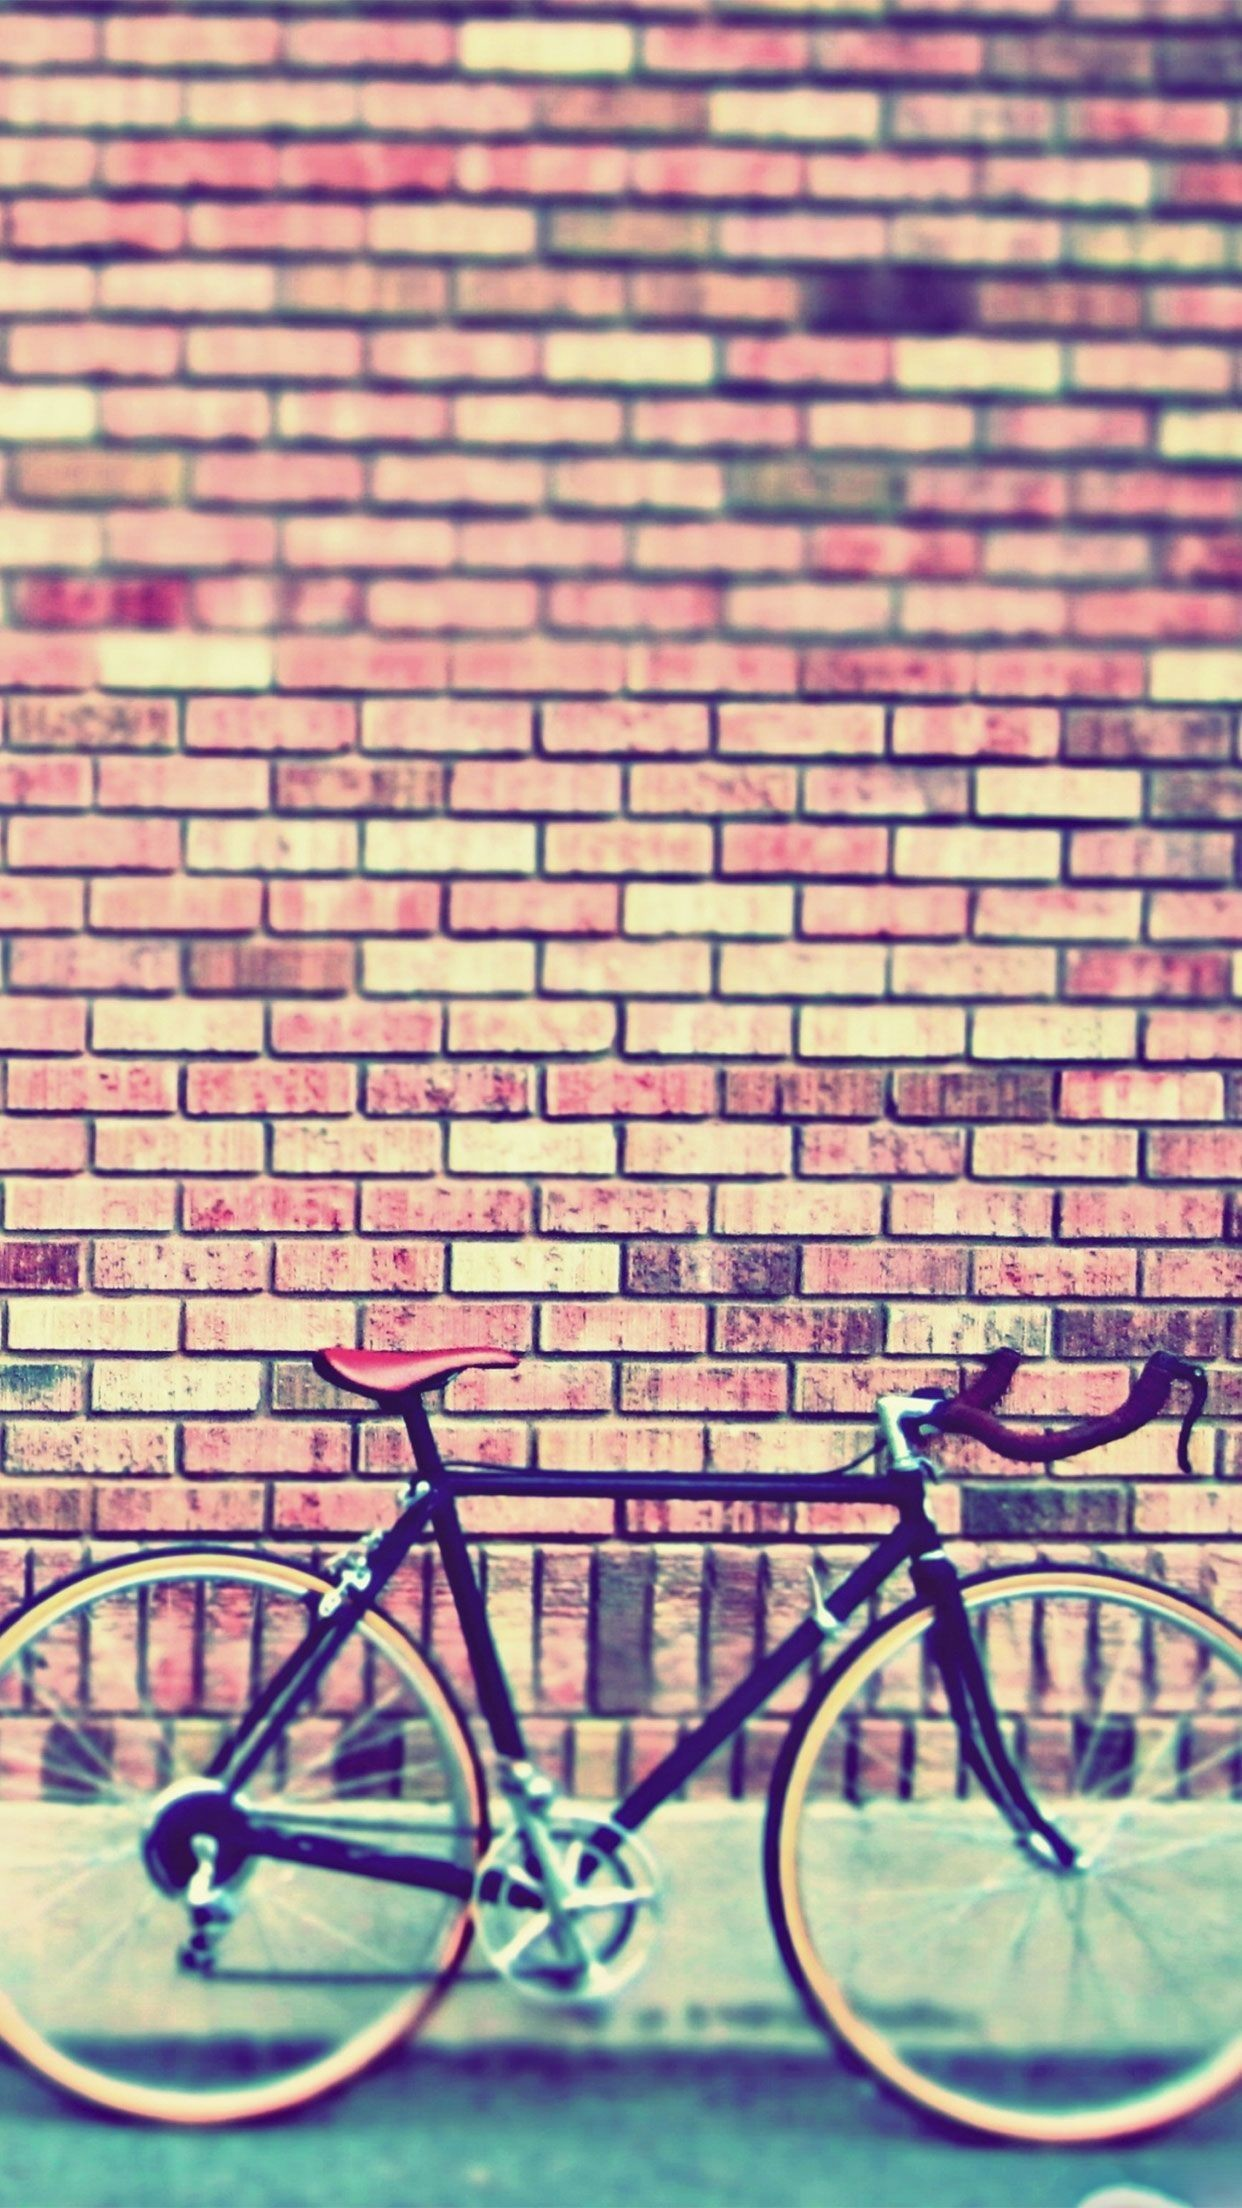 Fixie Wallpaper 2018 37 Images